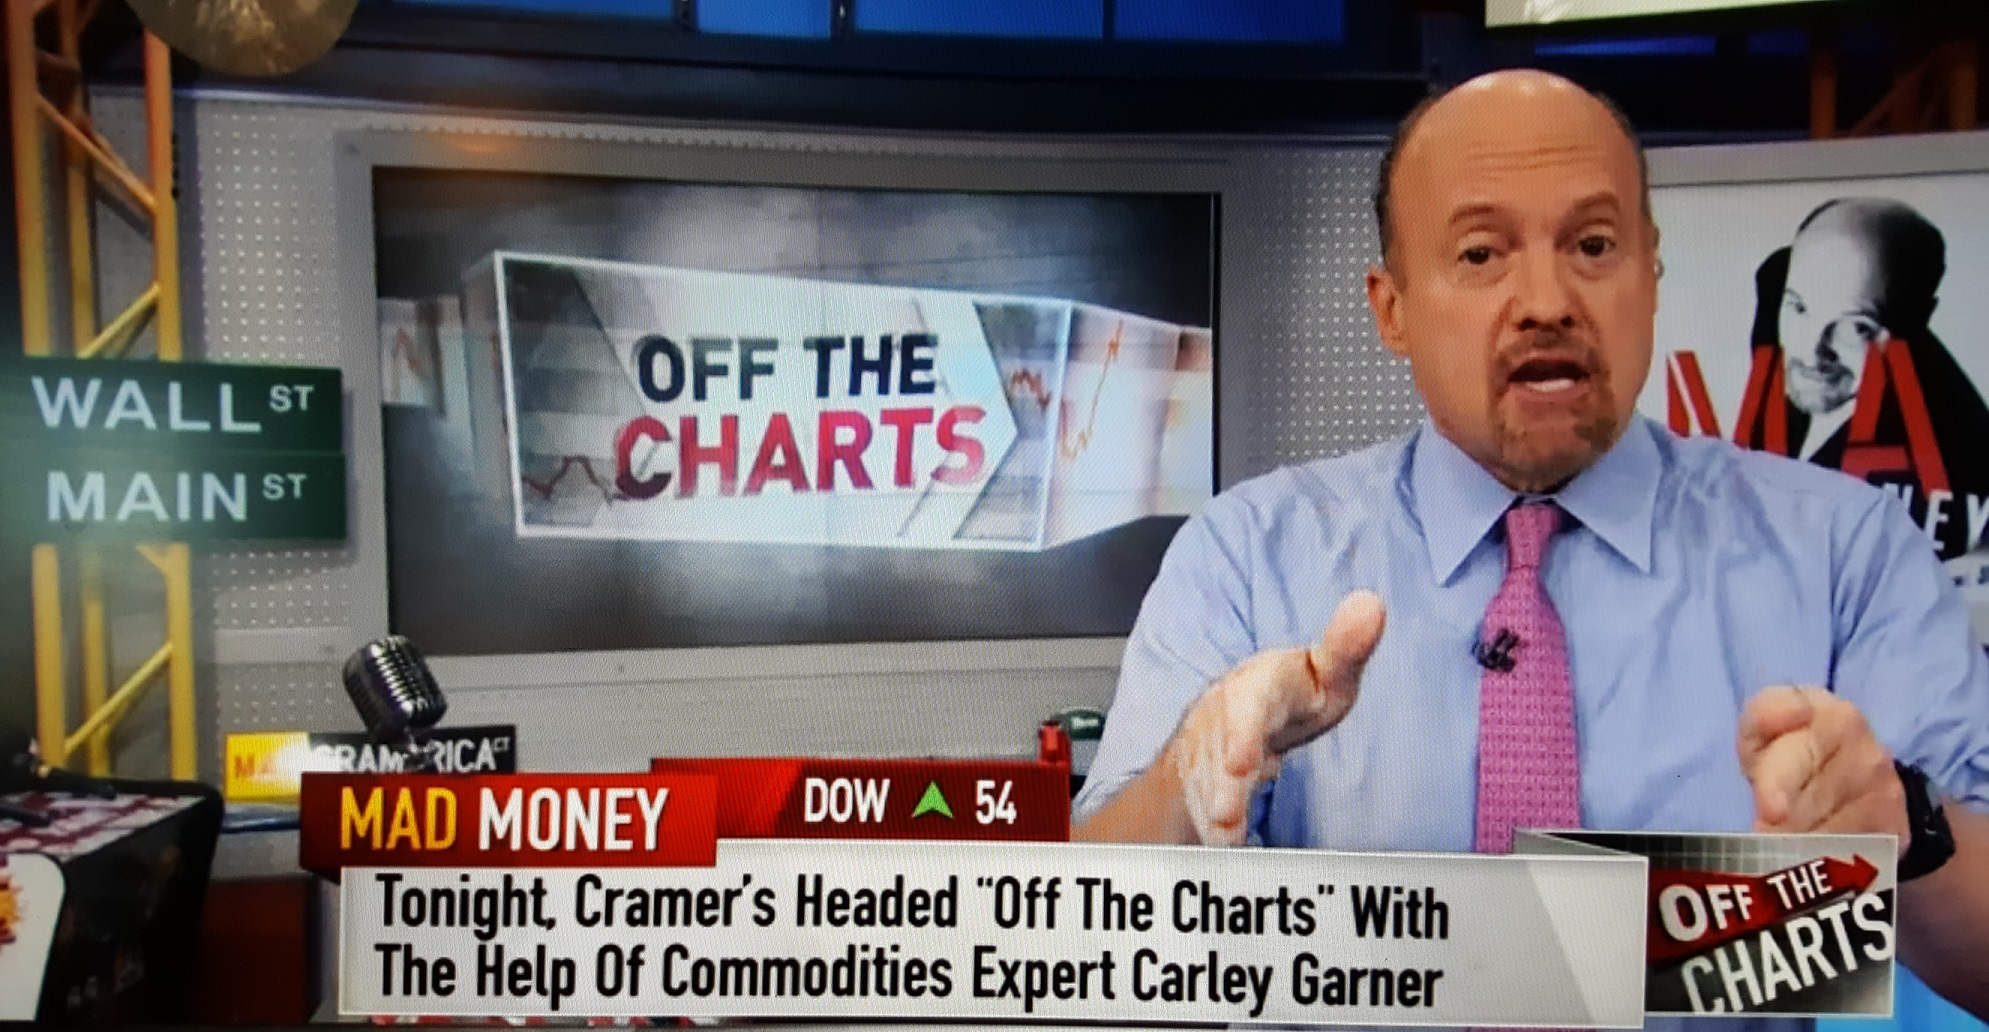 Carley Garner and Jim Cramer Off the Charts on CNBC